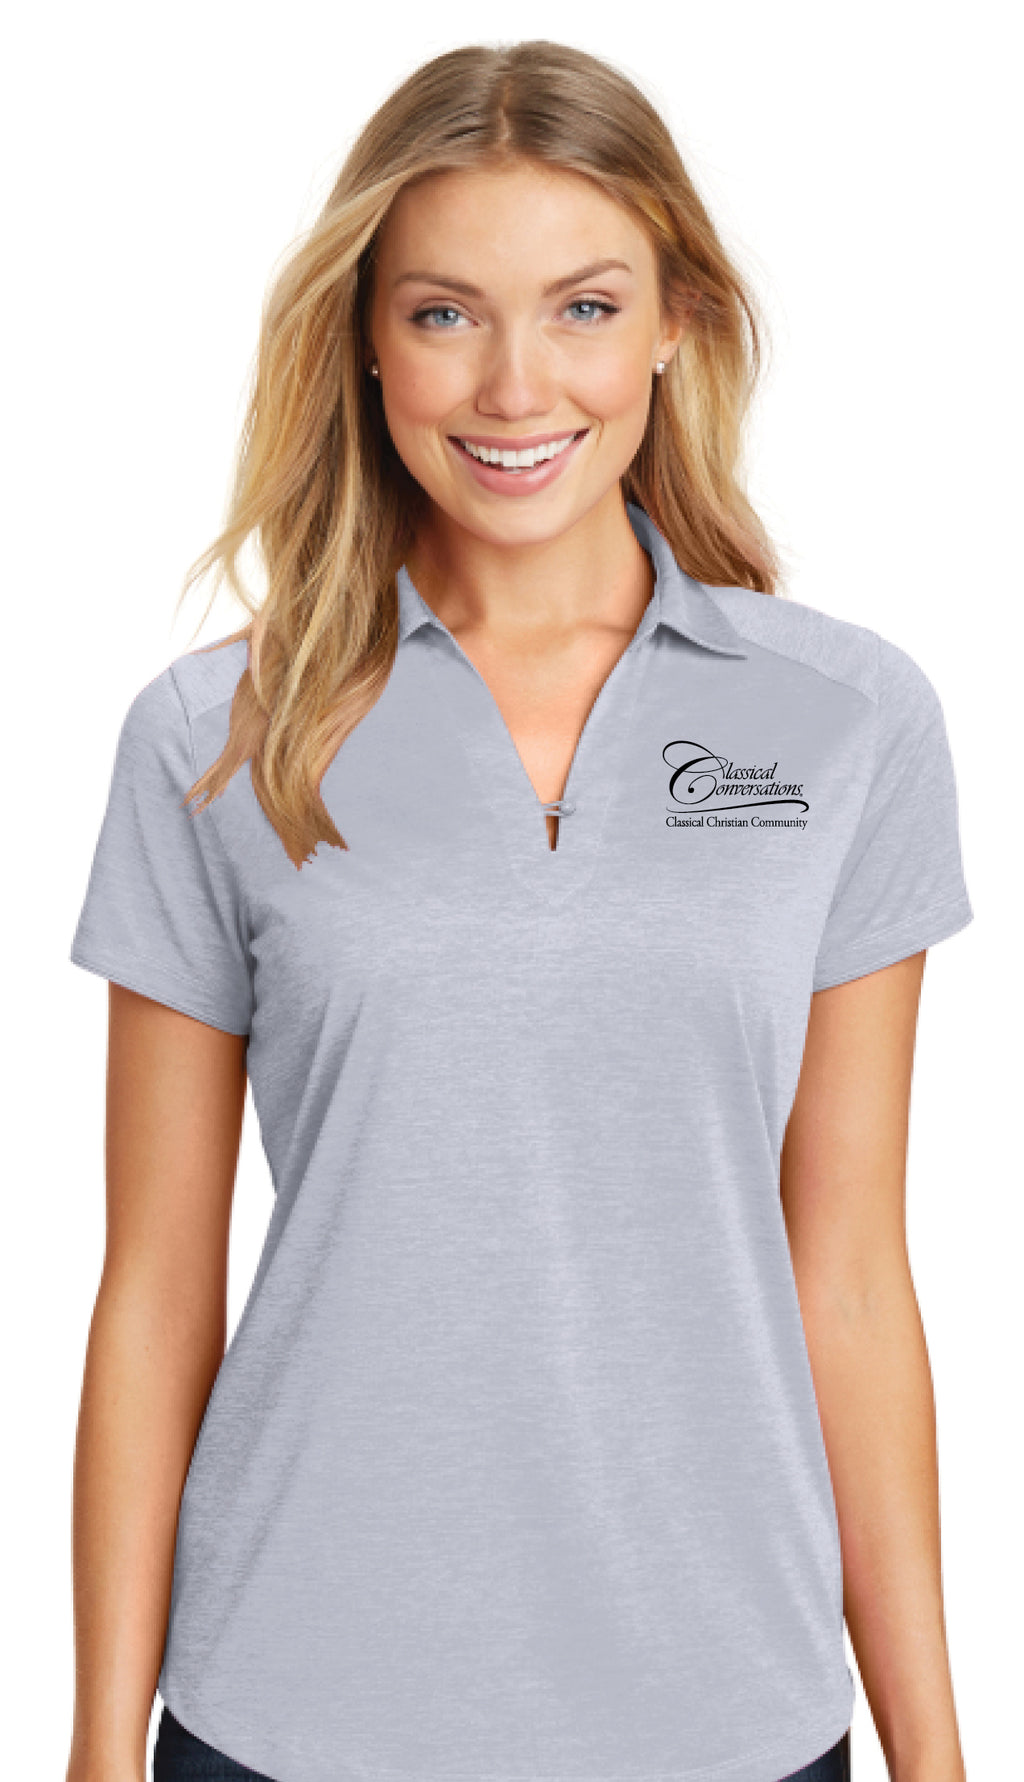 Women's CC Polo Shirt- Gray - While Supplies Last